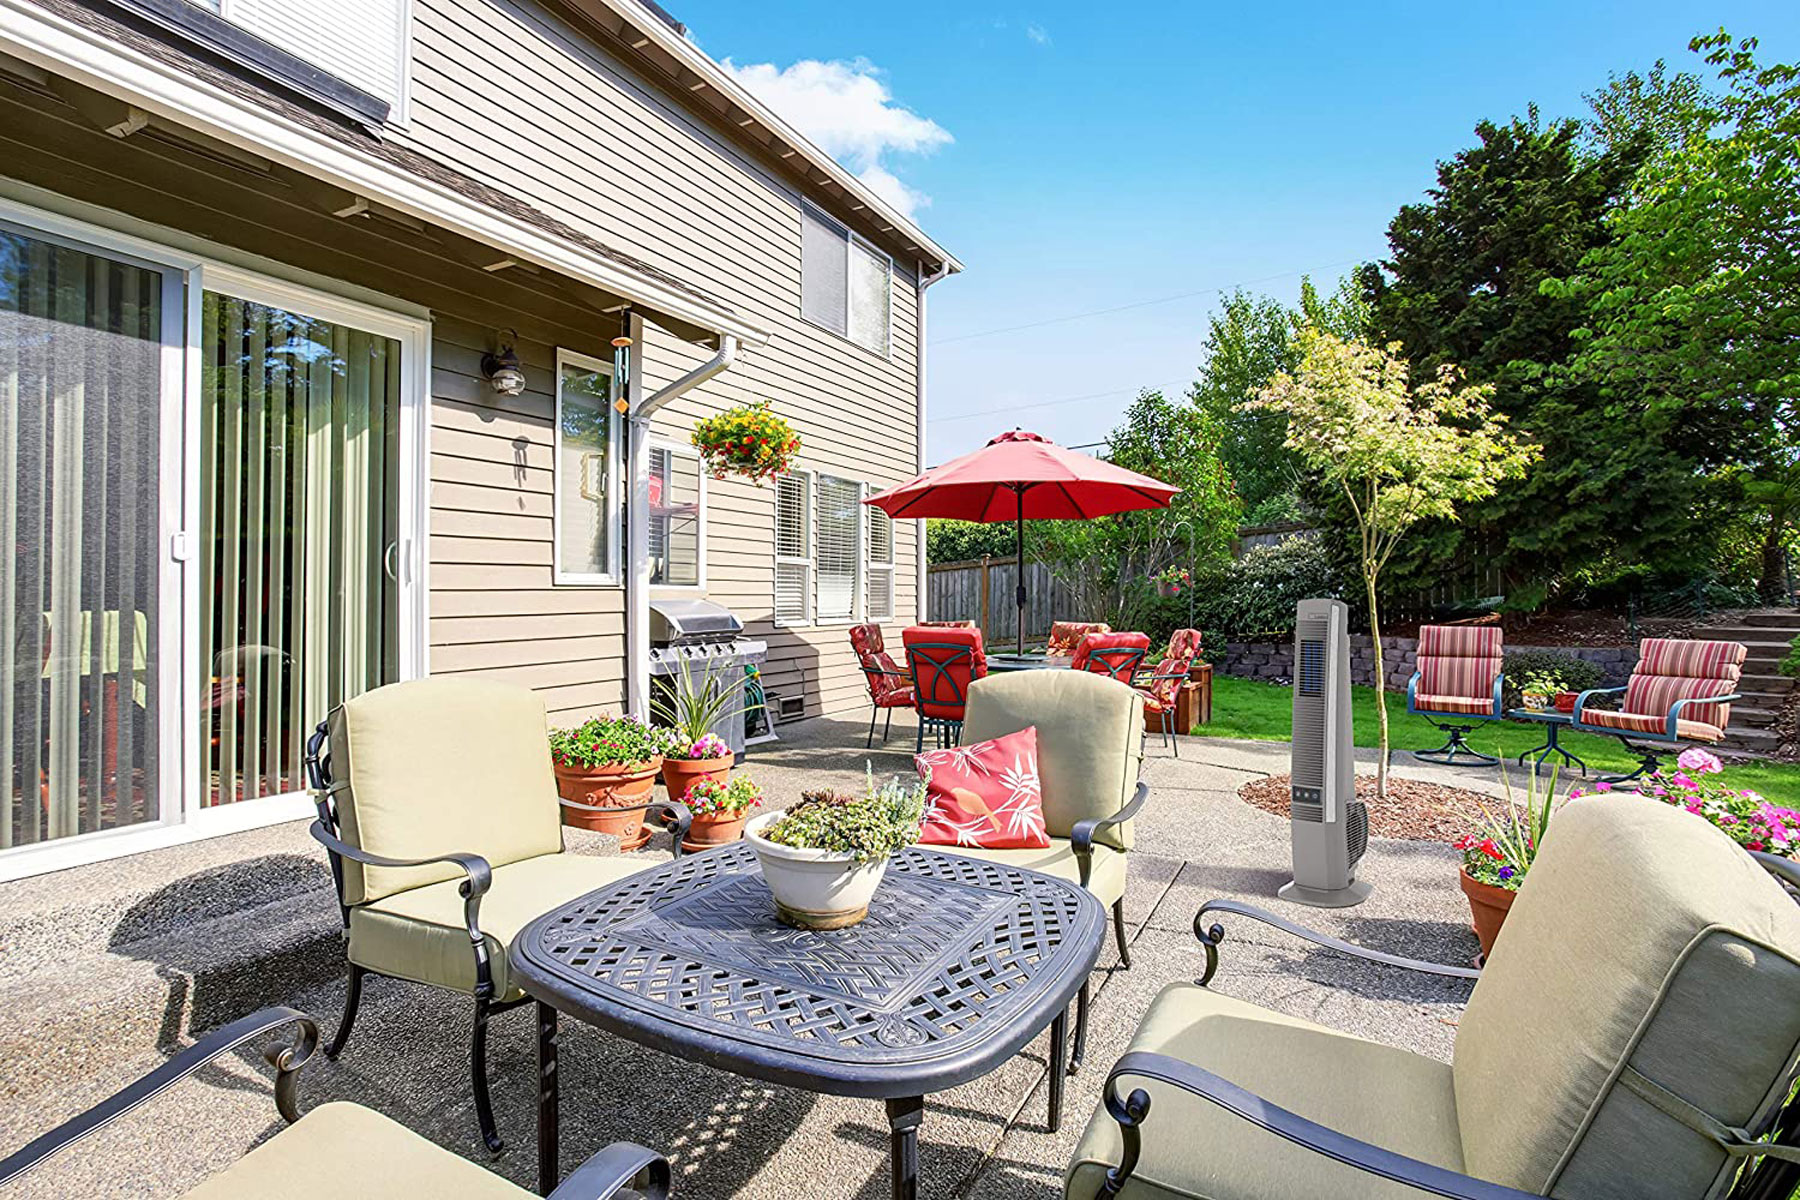 Backyard with furniture and outdoor fan